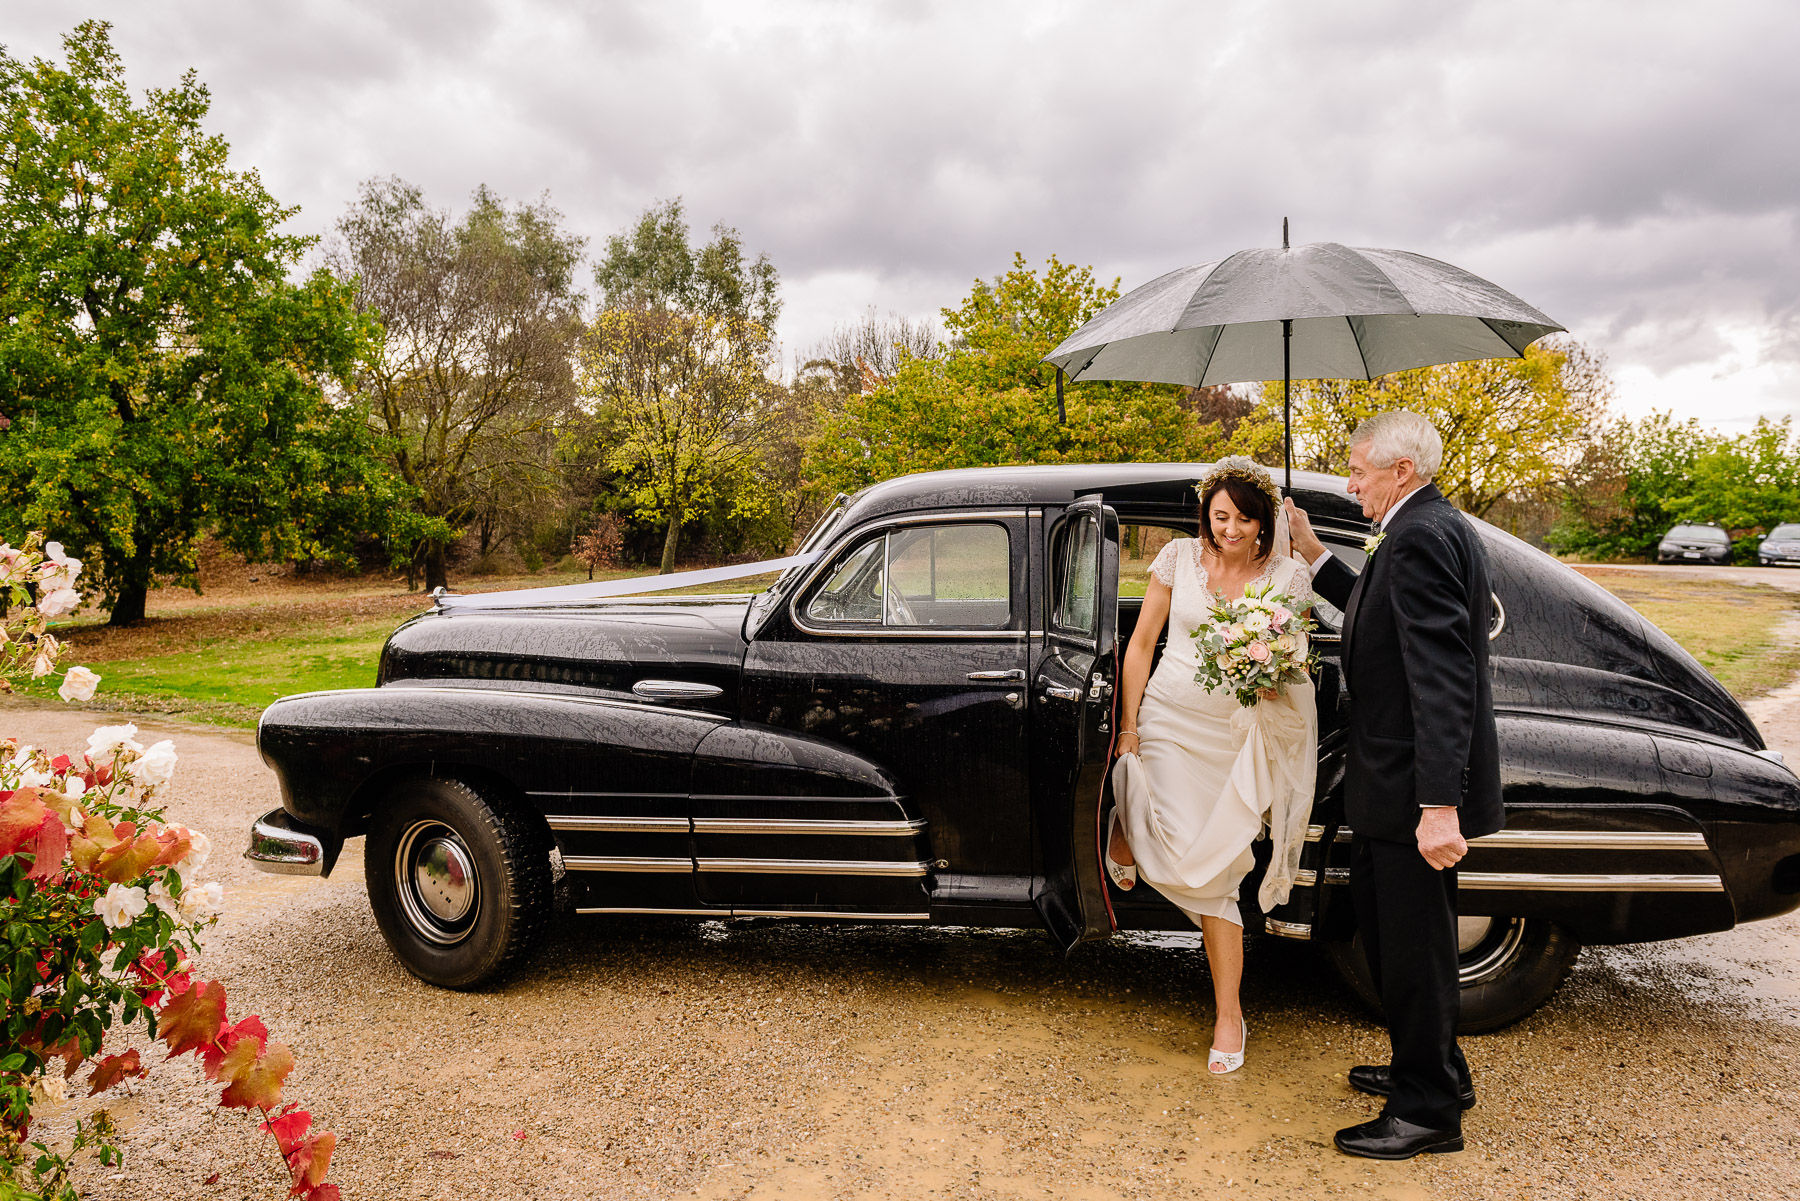 Justin_and_Jim_Best_Of_Wedding_Photography-47.jpg